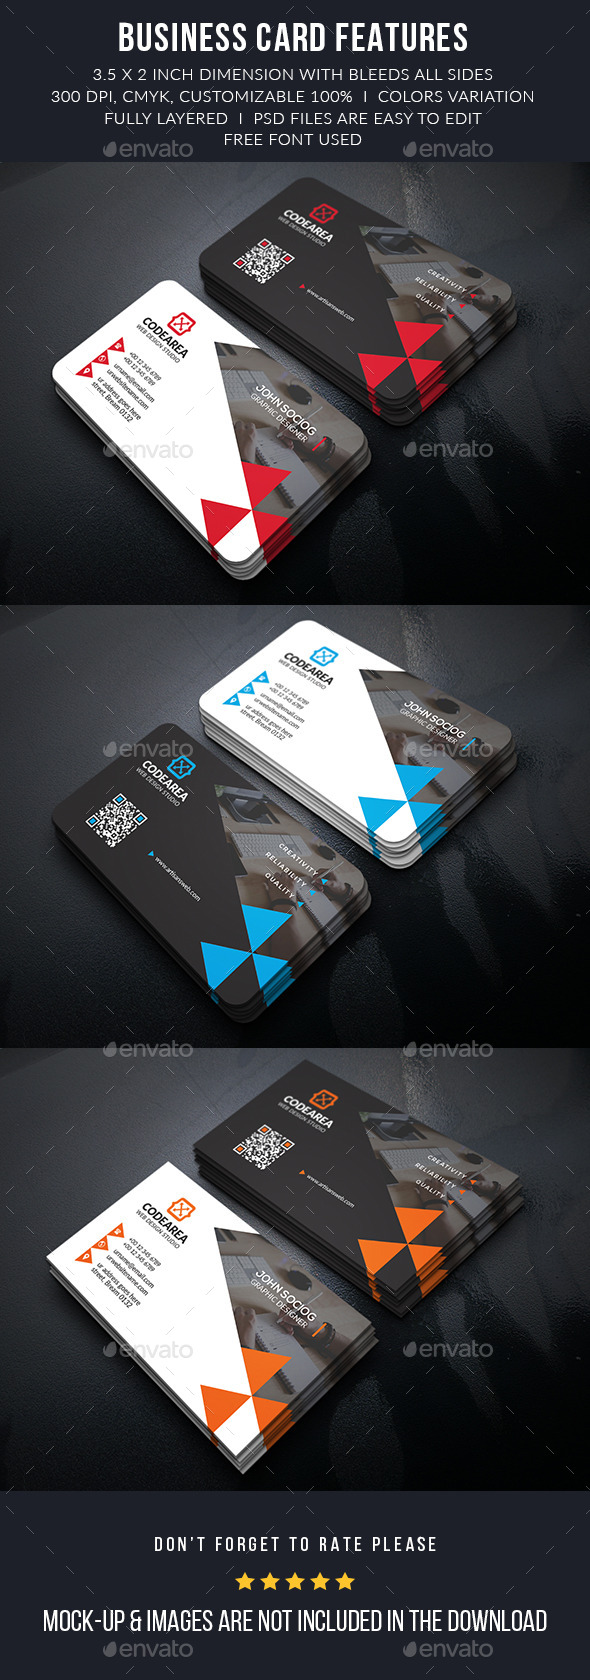 Creative Services Business Card - Business Cards Print Templates